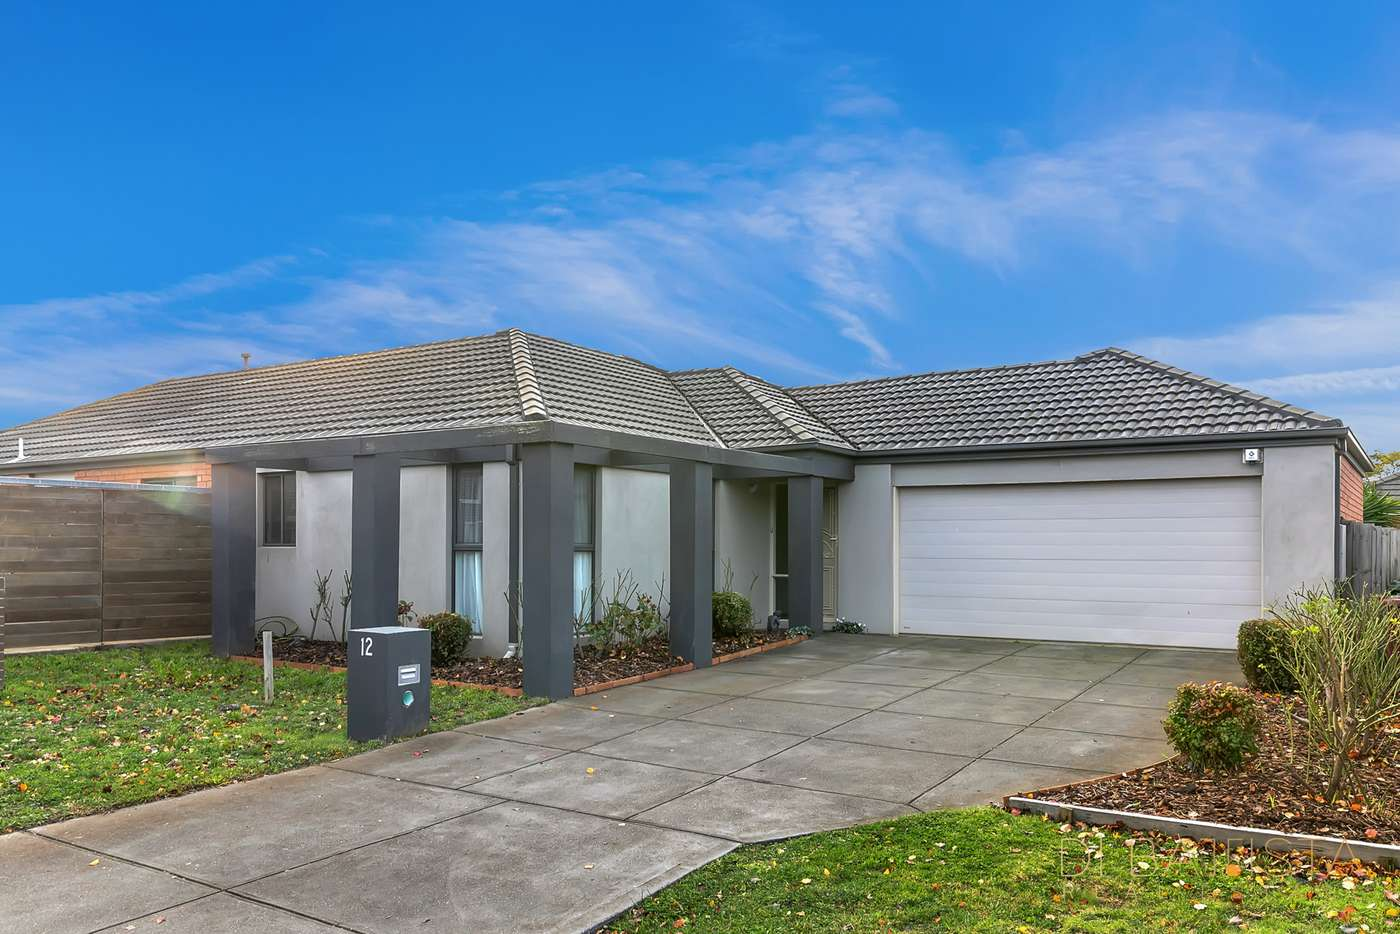 Main view of Homely house listing, 12 Eastwood Place, Craigieburn VIC 3064